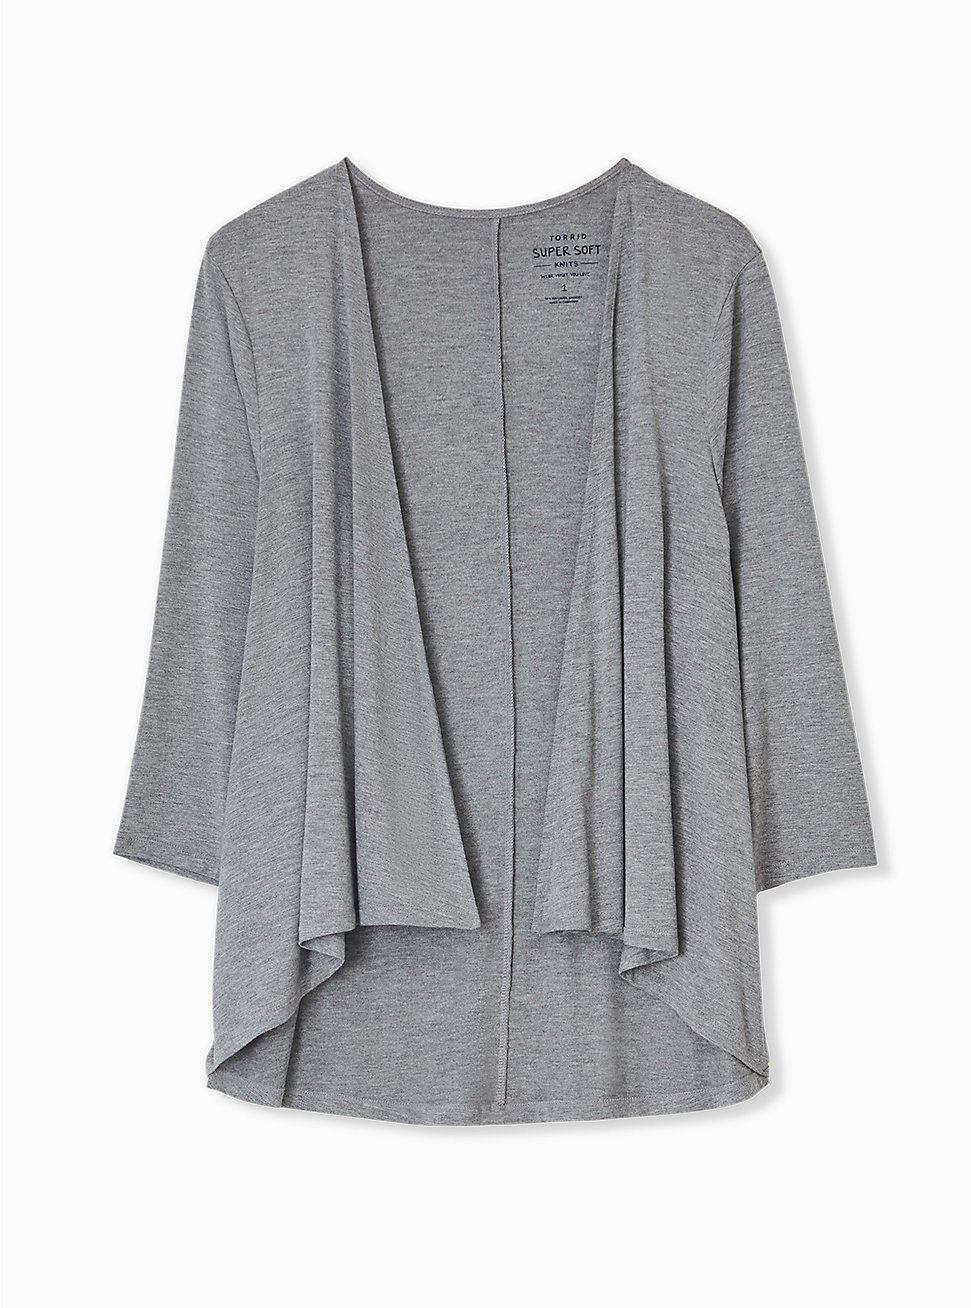 Super Soft Heather Grey Drape Front Cardigan, GREY HEATHER, hi-res